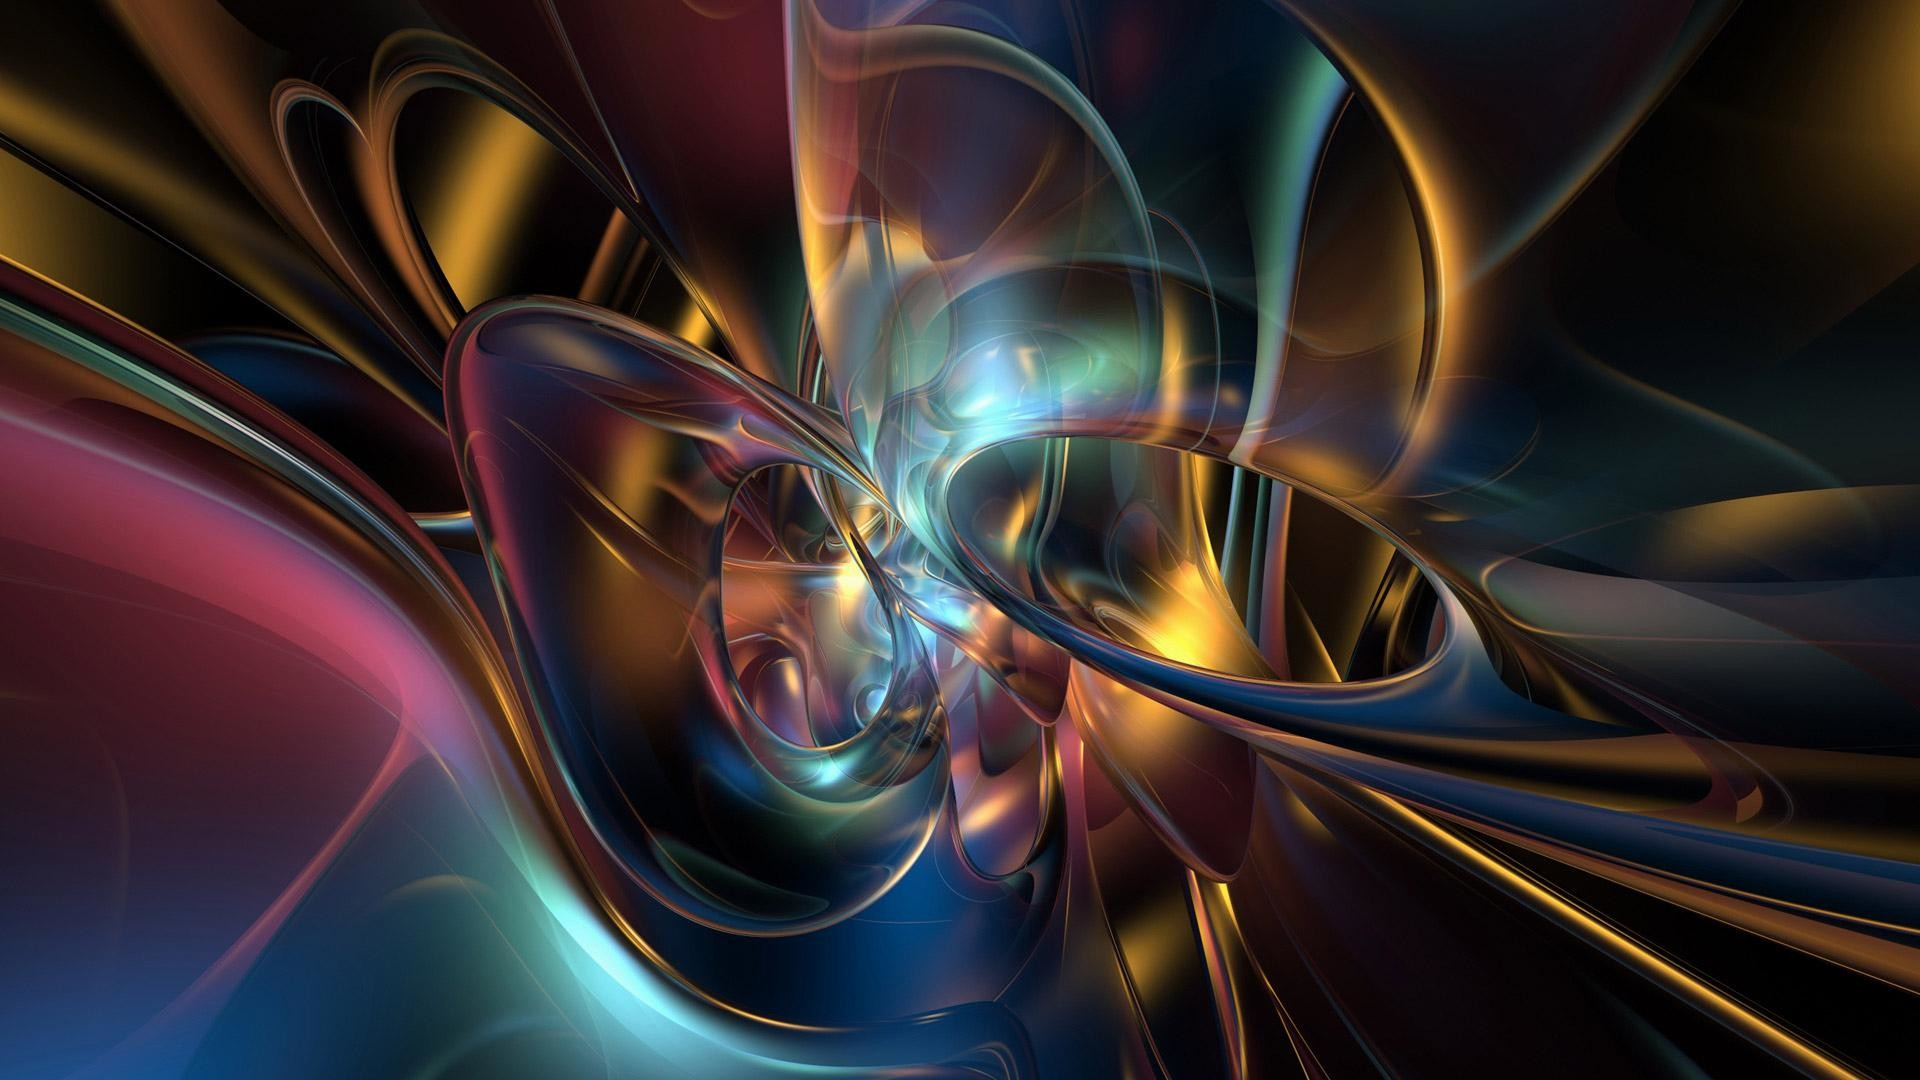 6. abstract-wallpaper-hd-free-Download5-600×338